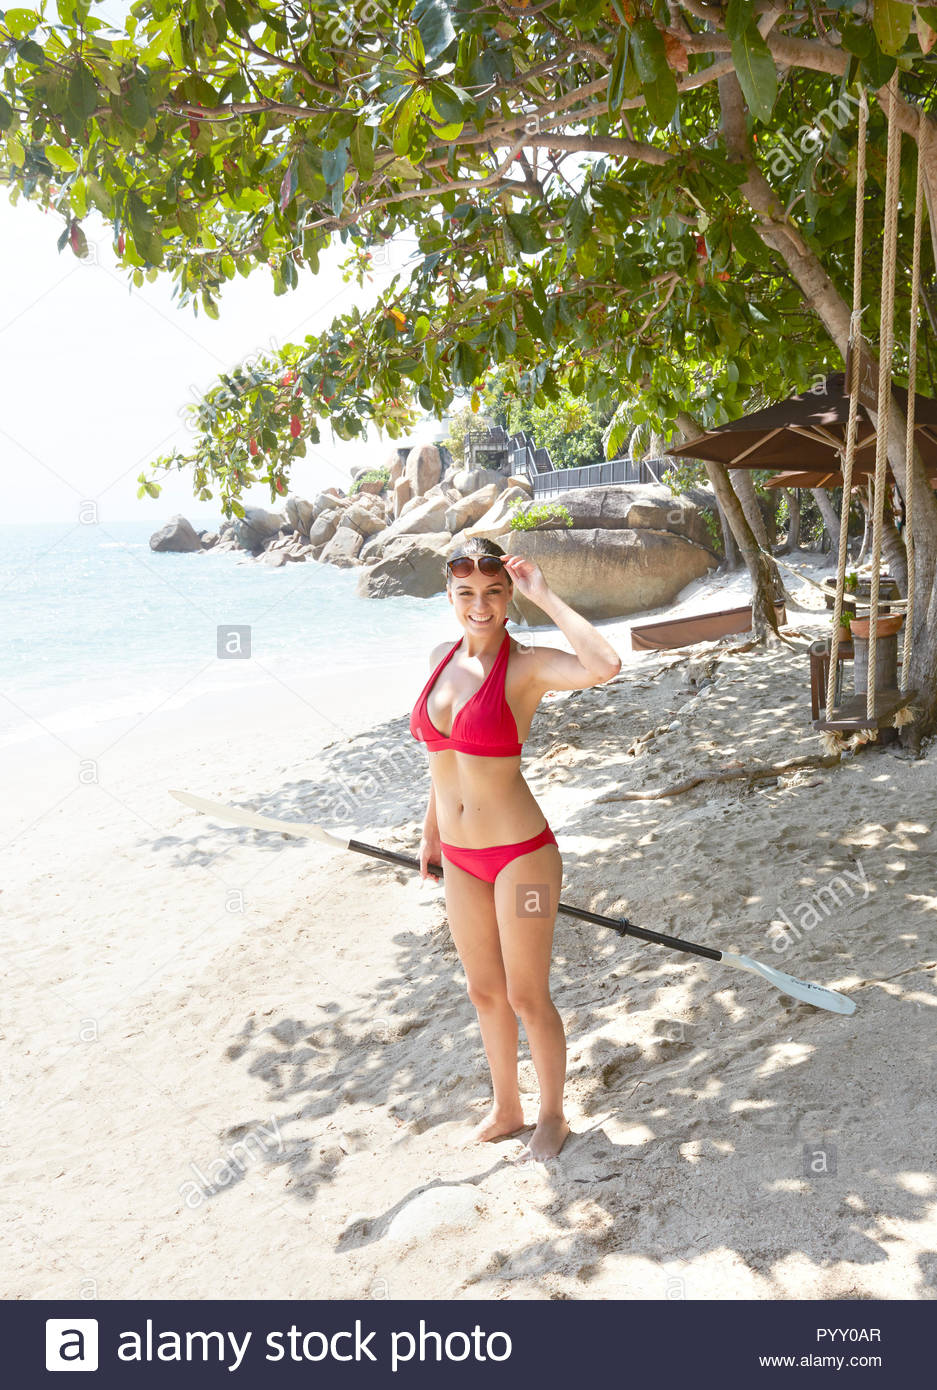 Young woman wearing red bikini holding oar on beach - Stock Image